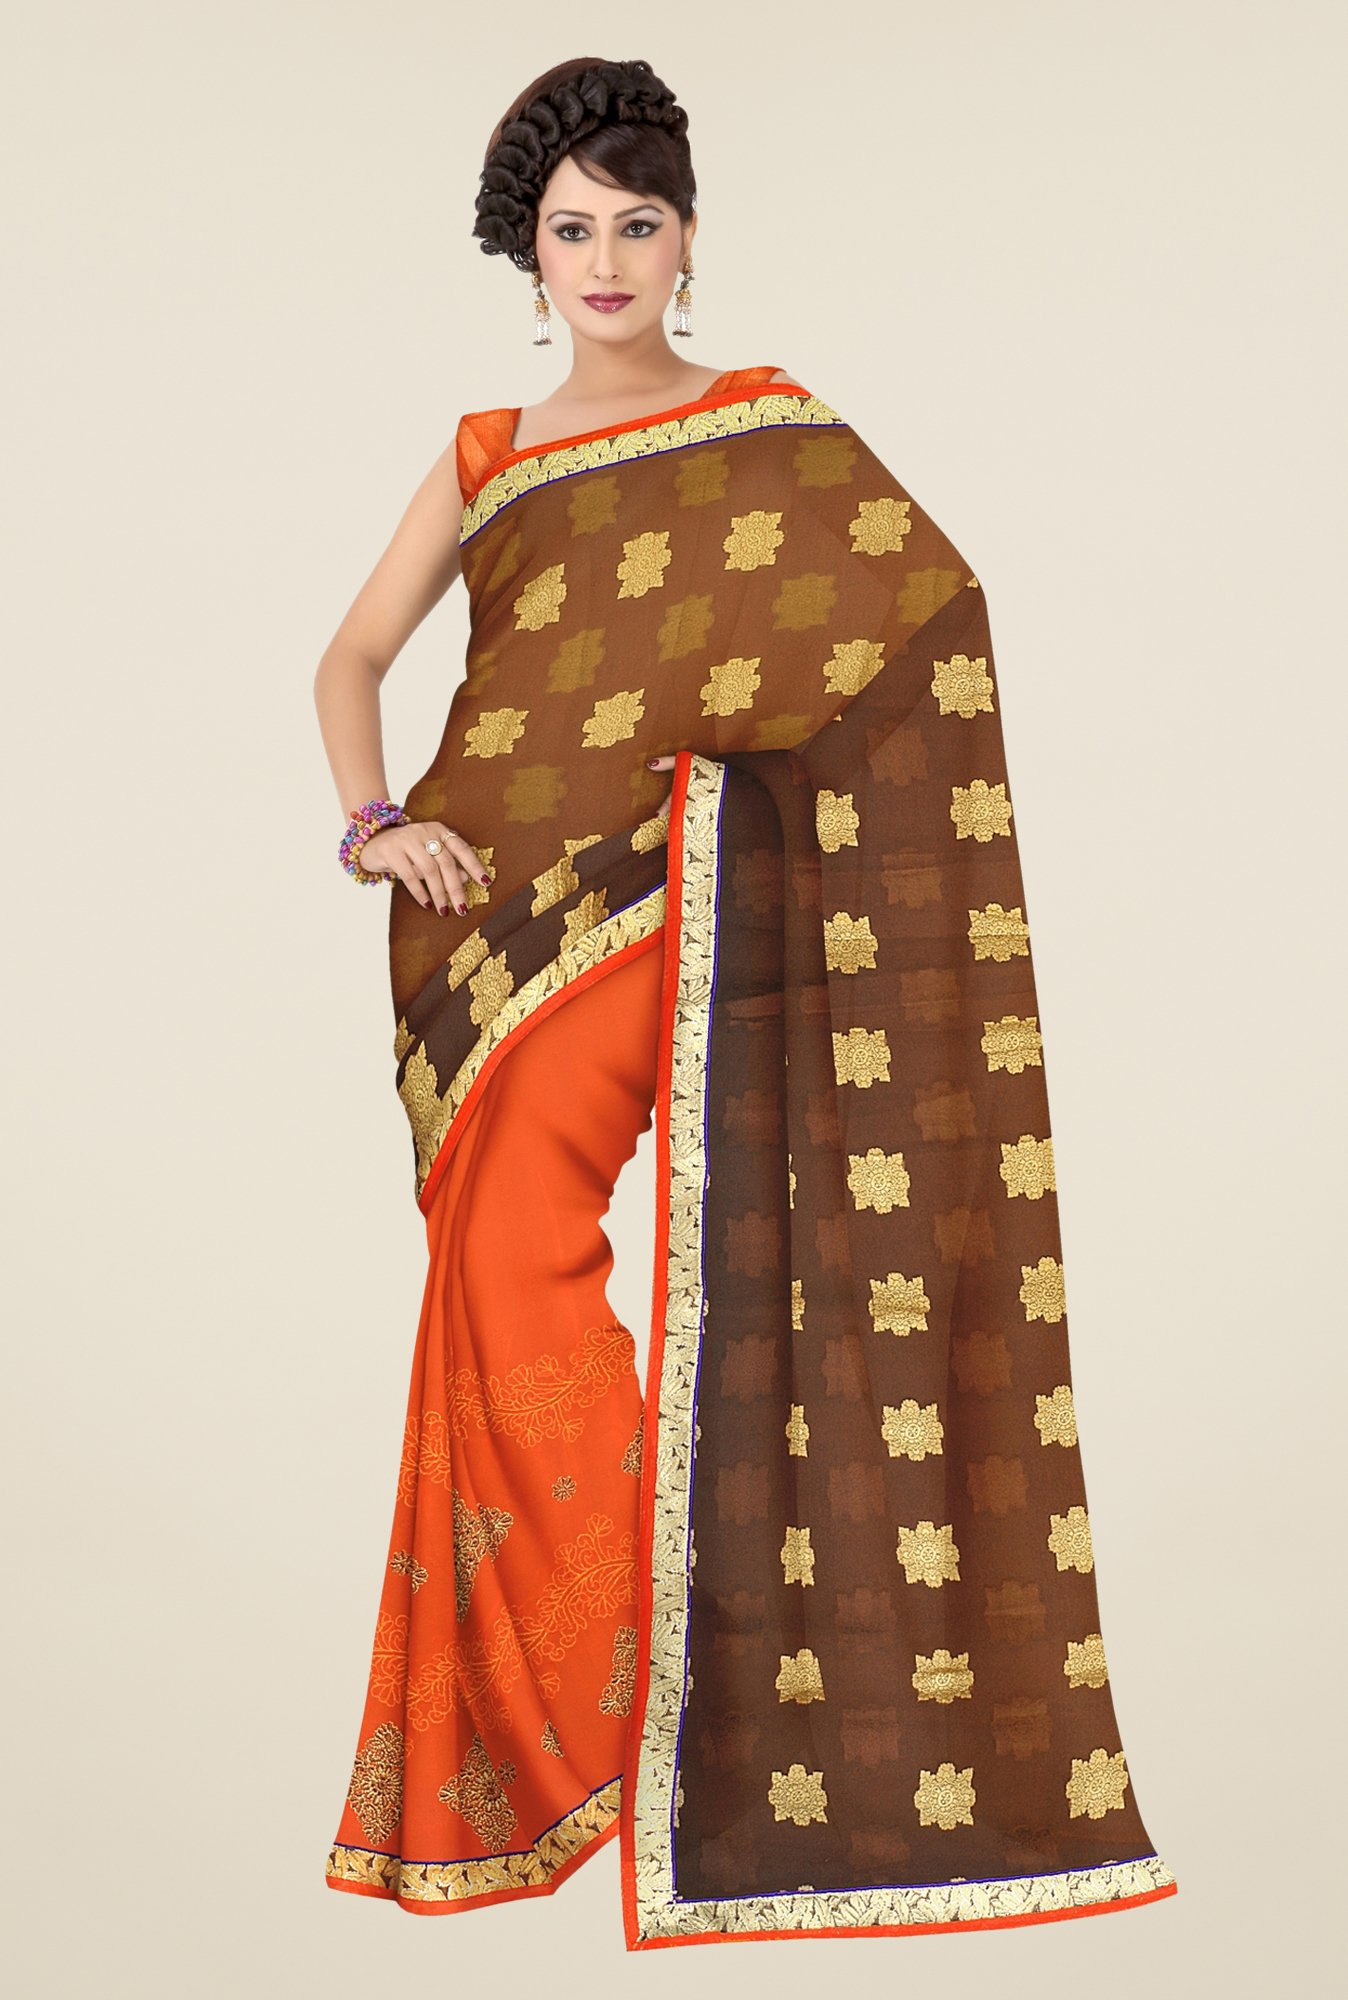 Triveni Orange & Brown Printed Faux Georgette Saree